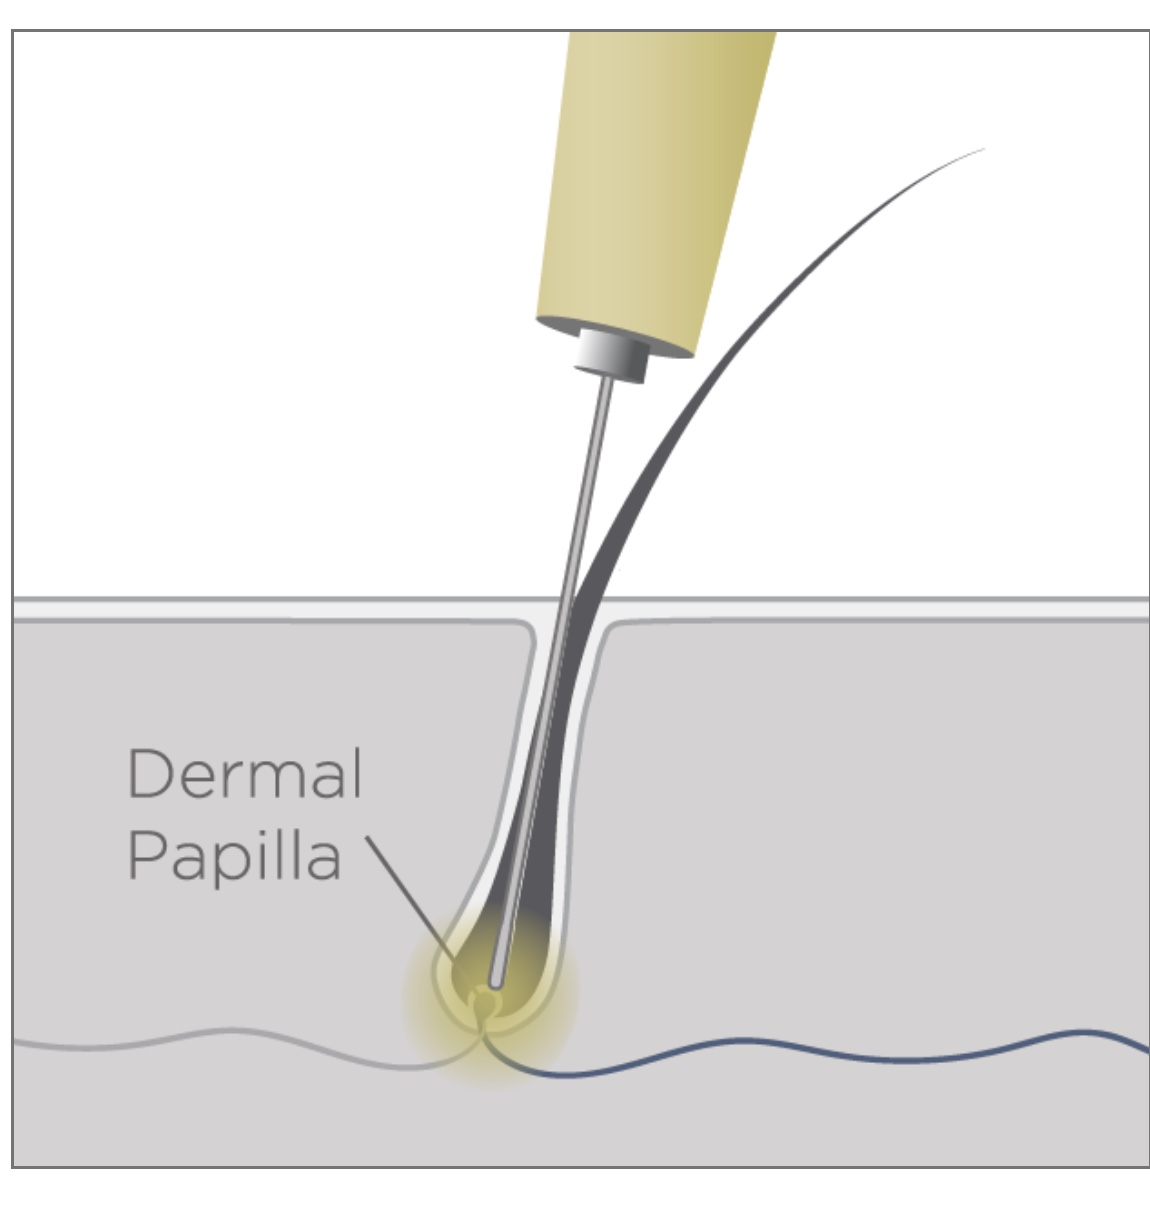 diagram of probe in follicle